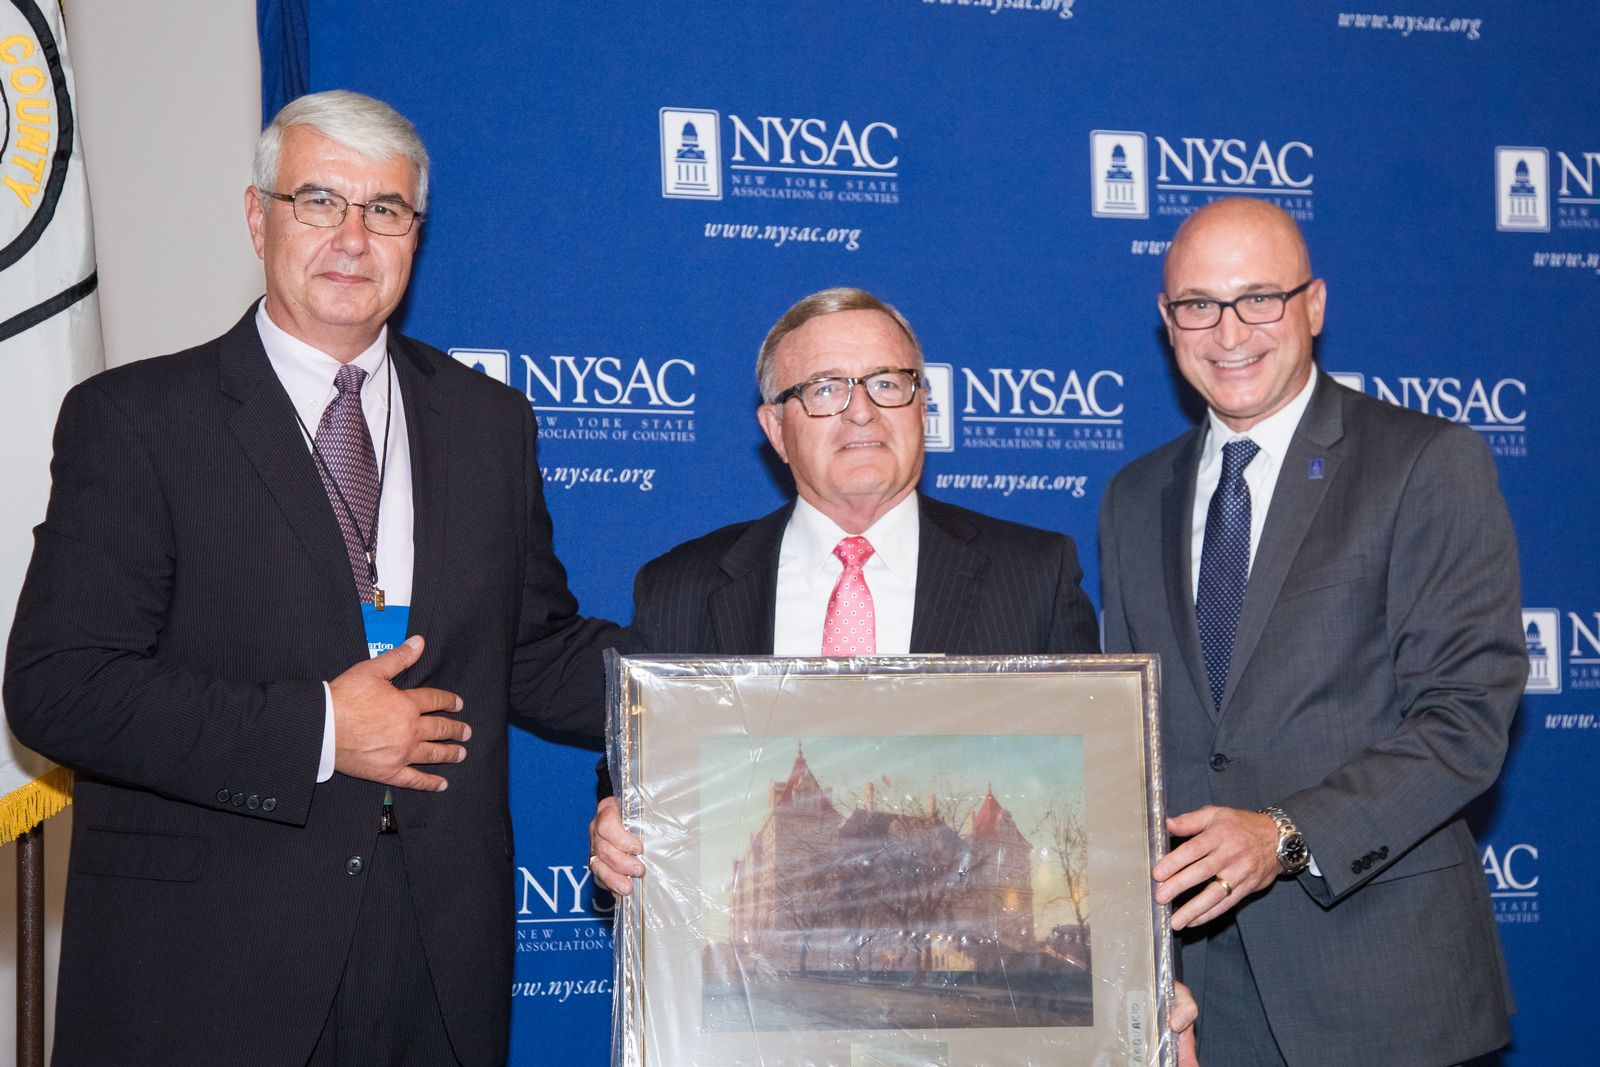 Senator DeFrancisco with NYSAC President Bill Cherry and Exec. Director Stephen Acquario.